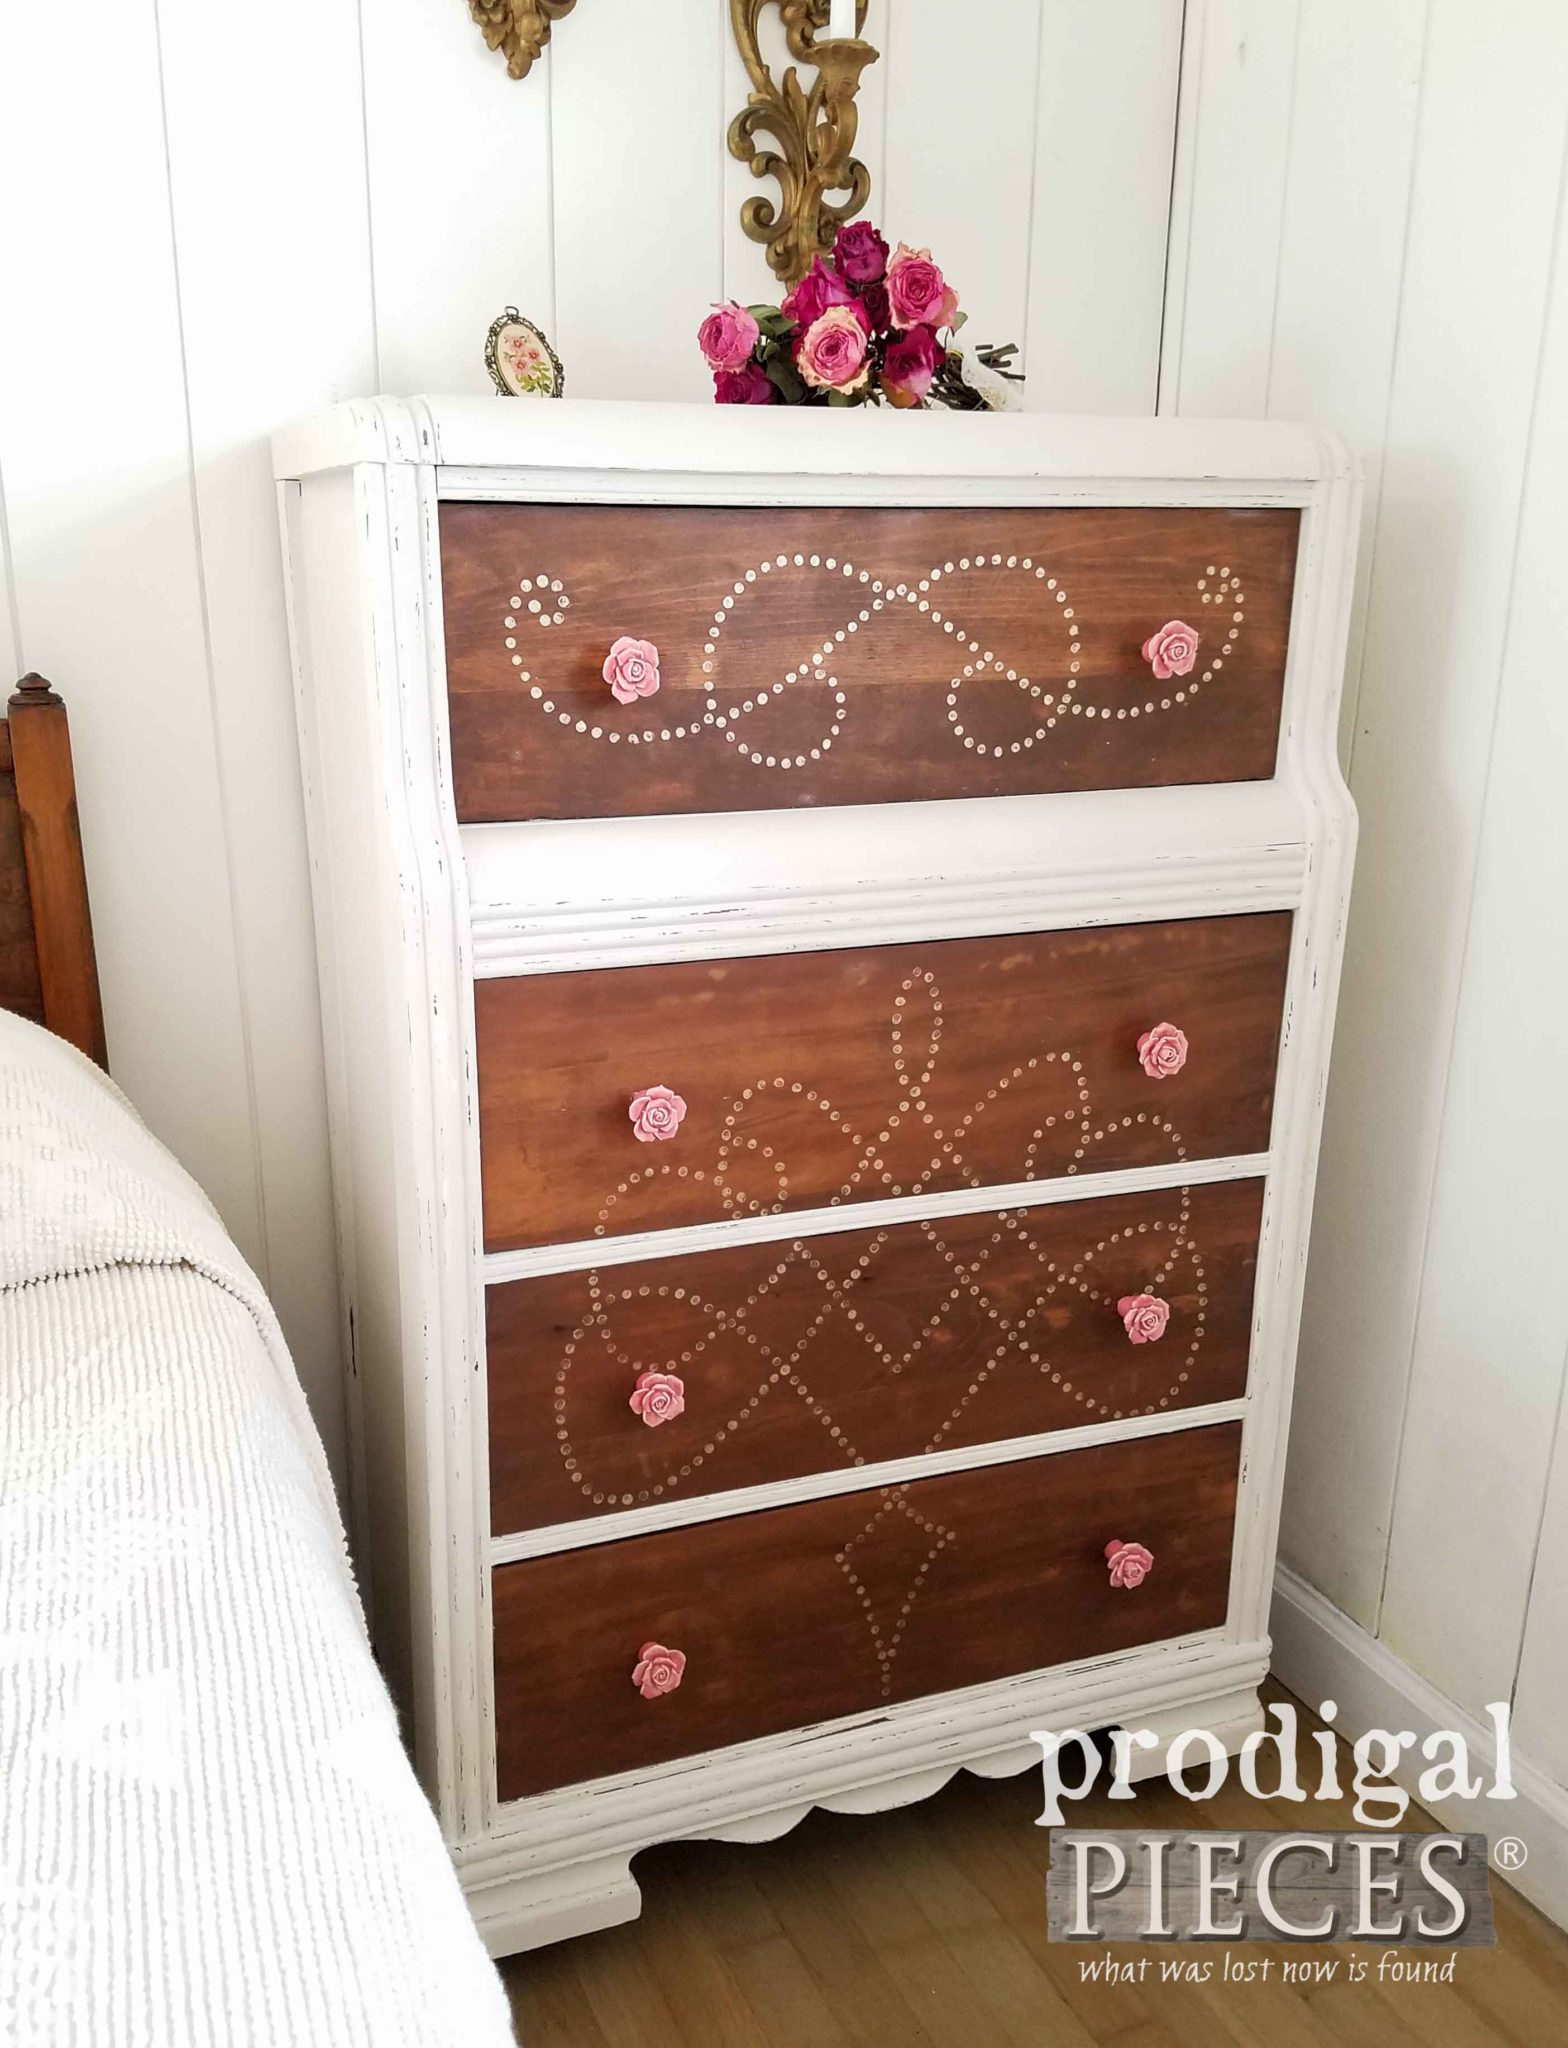 Beautiful Vintage Waterfall Chest of Drawers Made New by Teen Girl | Prodigal Pieces | prodigalpieces.com